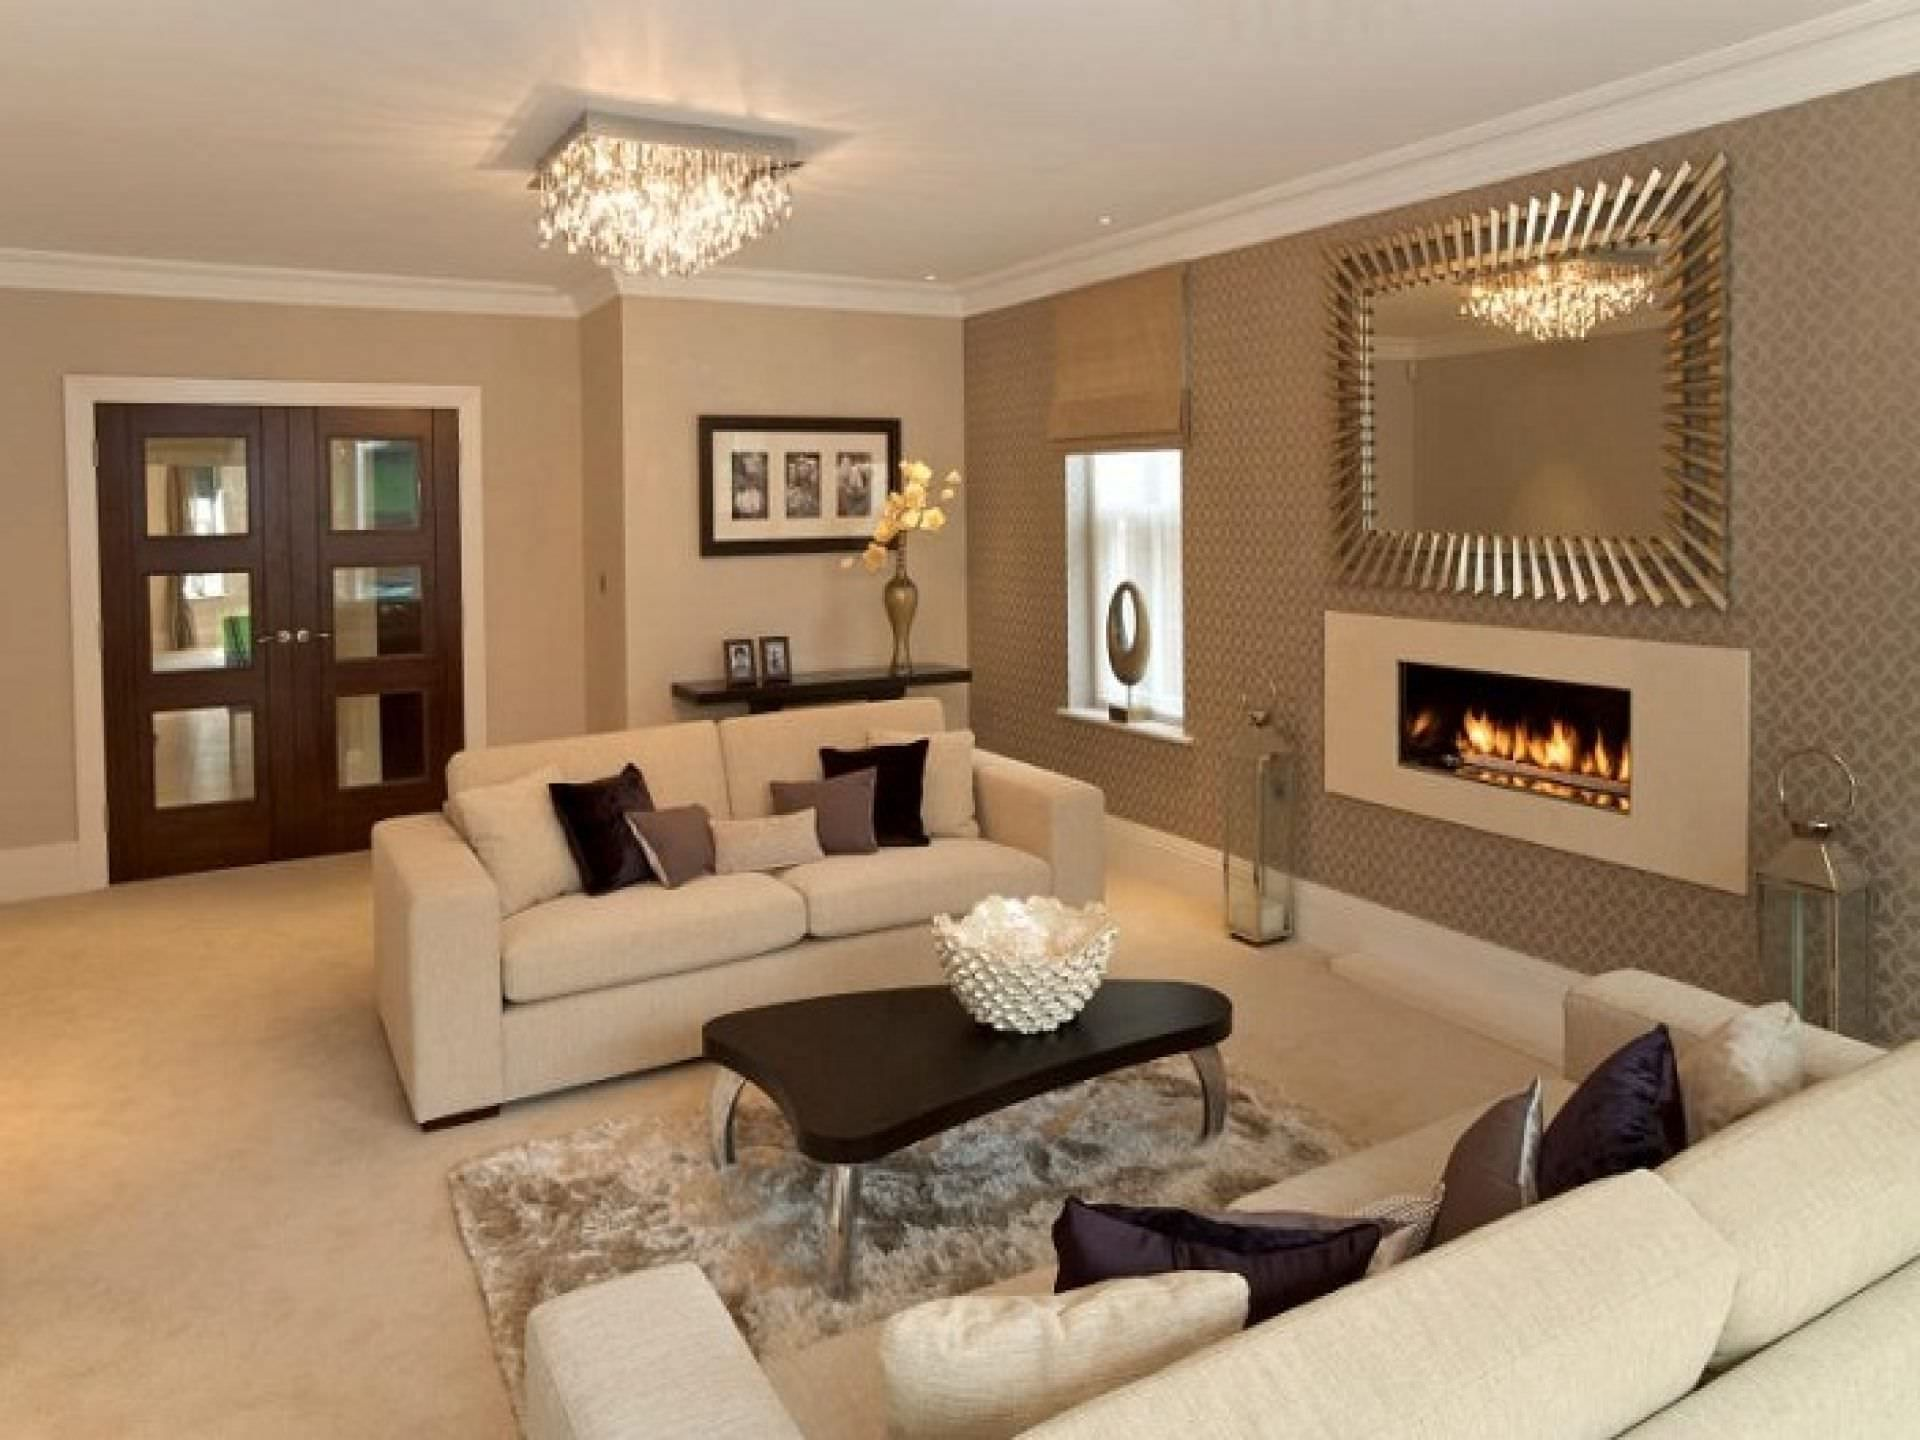 choosing interior tan paint colors ideas accent walls in on interior wall colors ideas id=58577